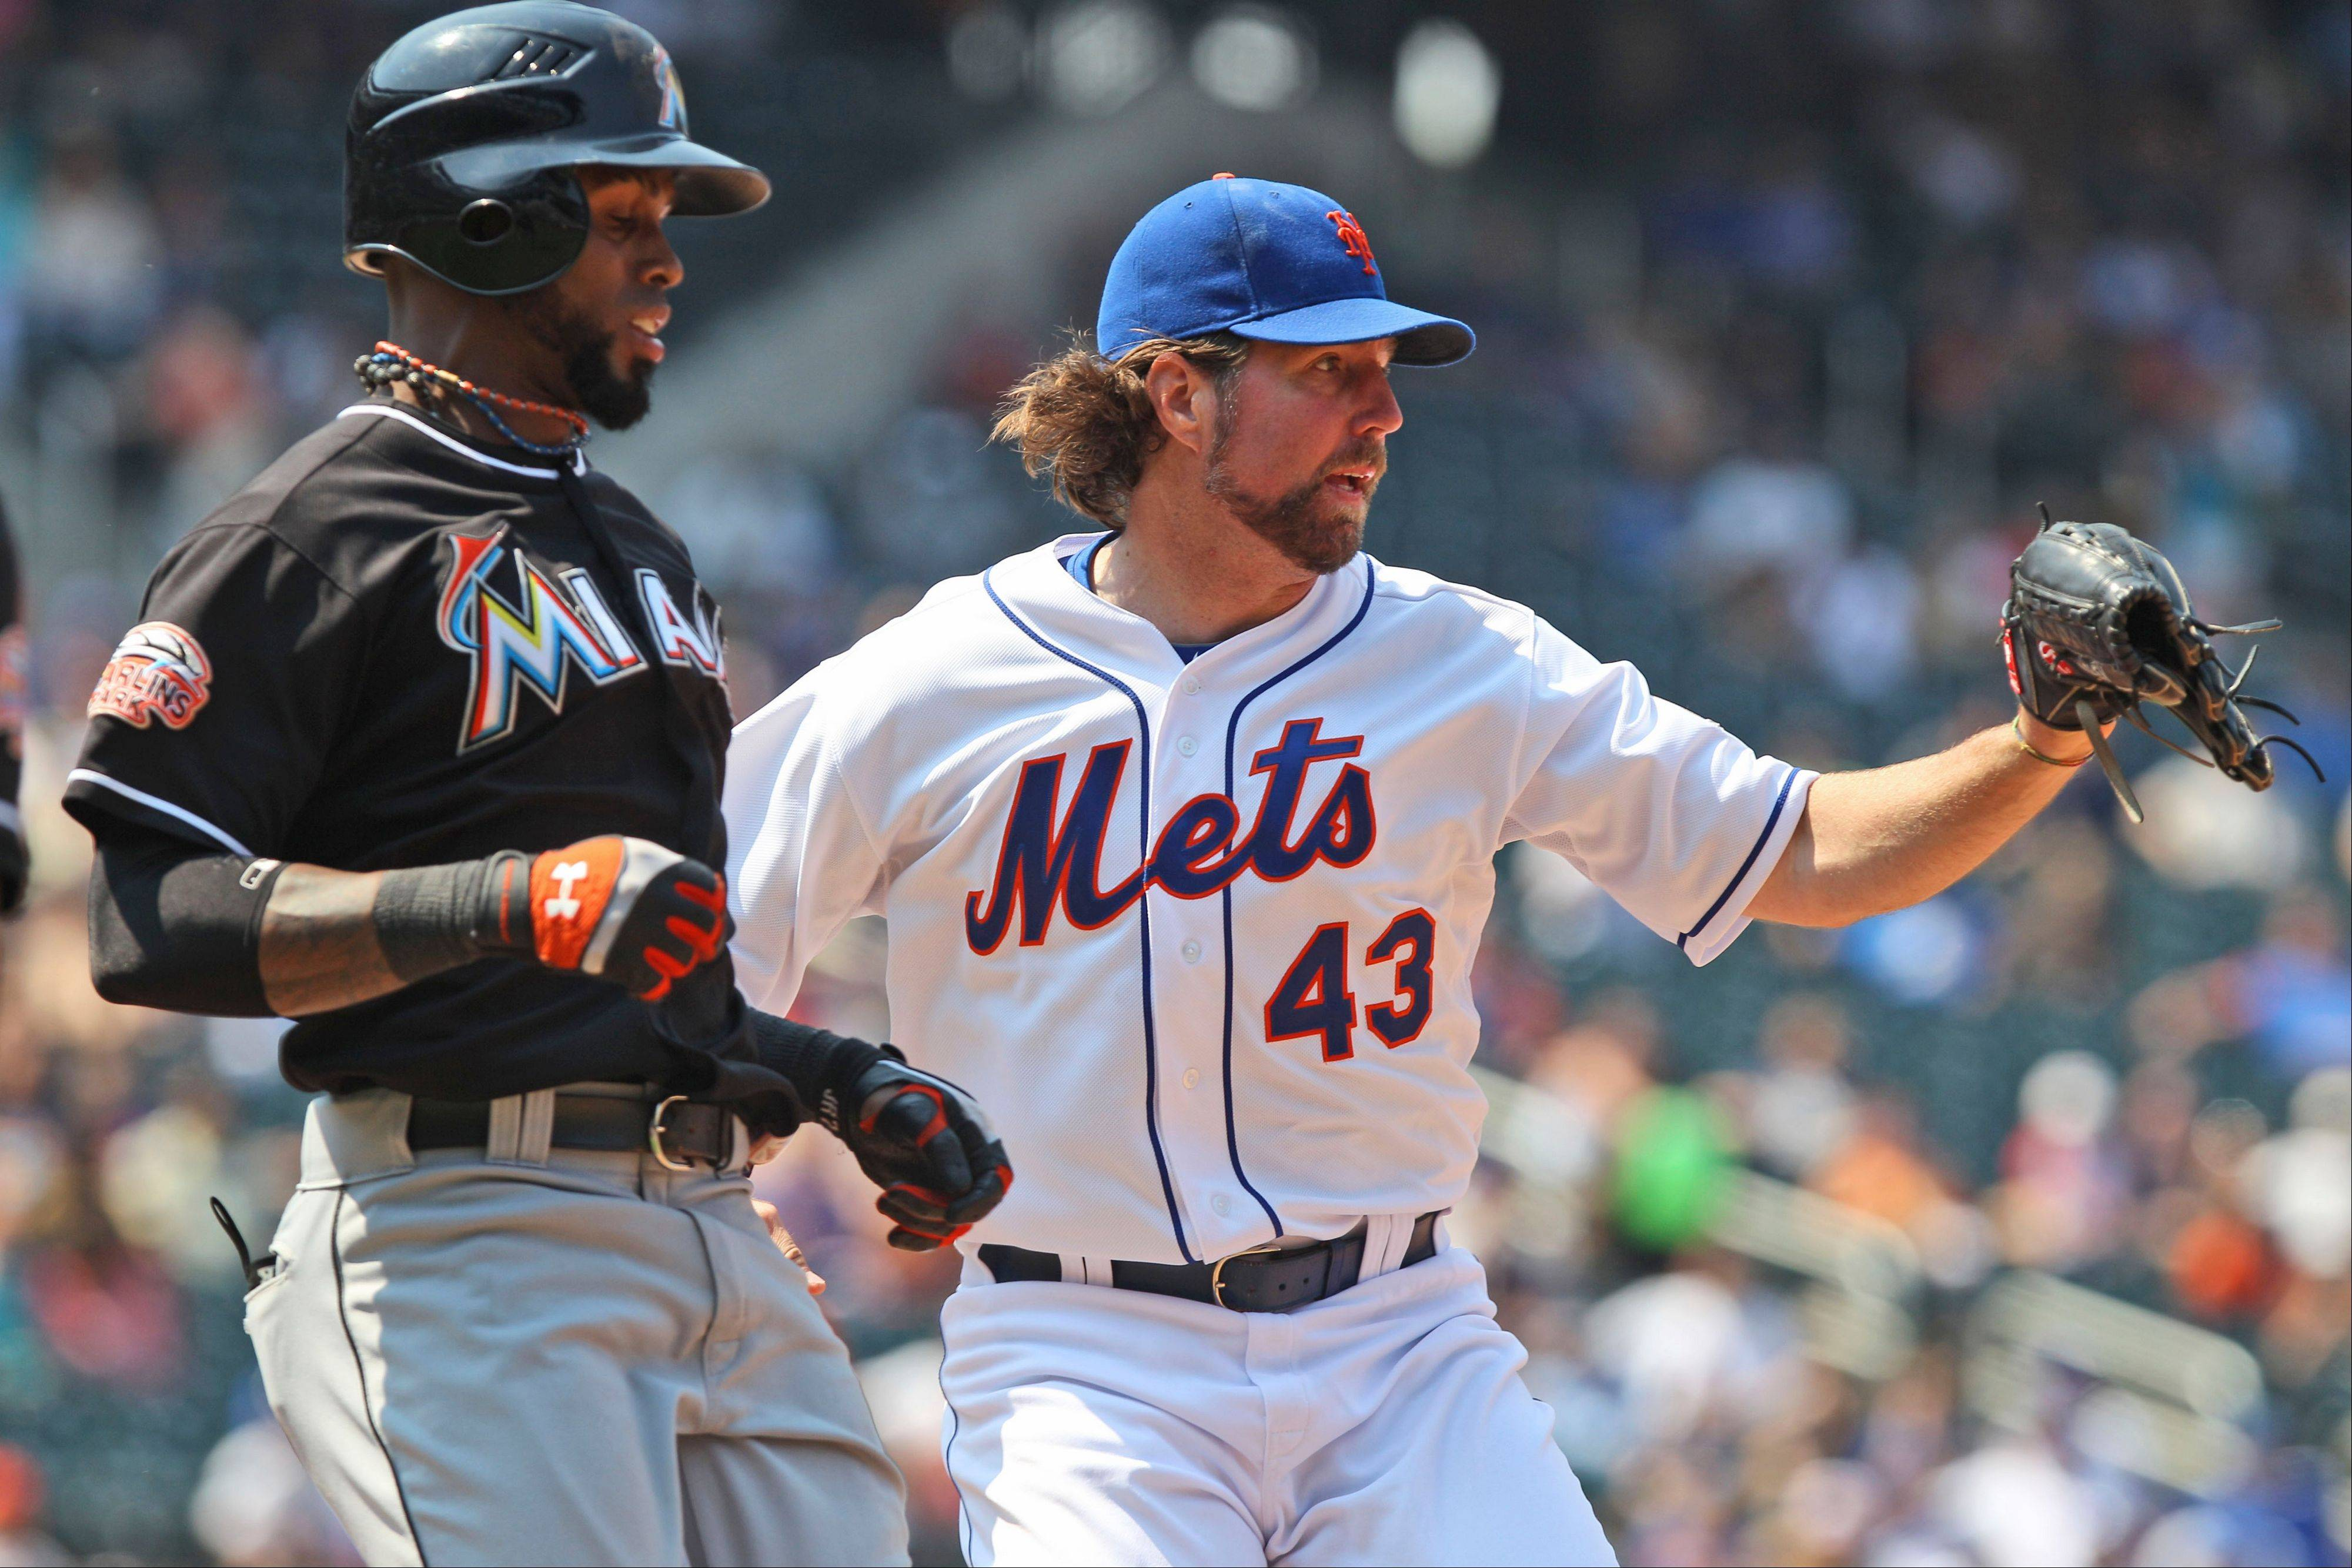 Mets starting pitcher R.A. Dickey, right, beats Miami's Jose Reyes to first base for an out during the eighth inning Thursday in New York.